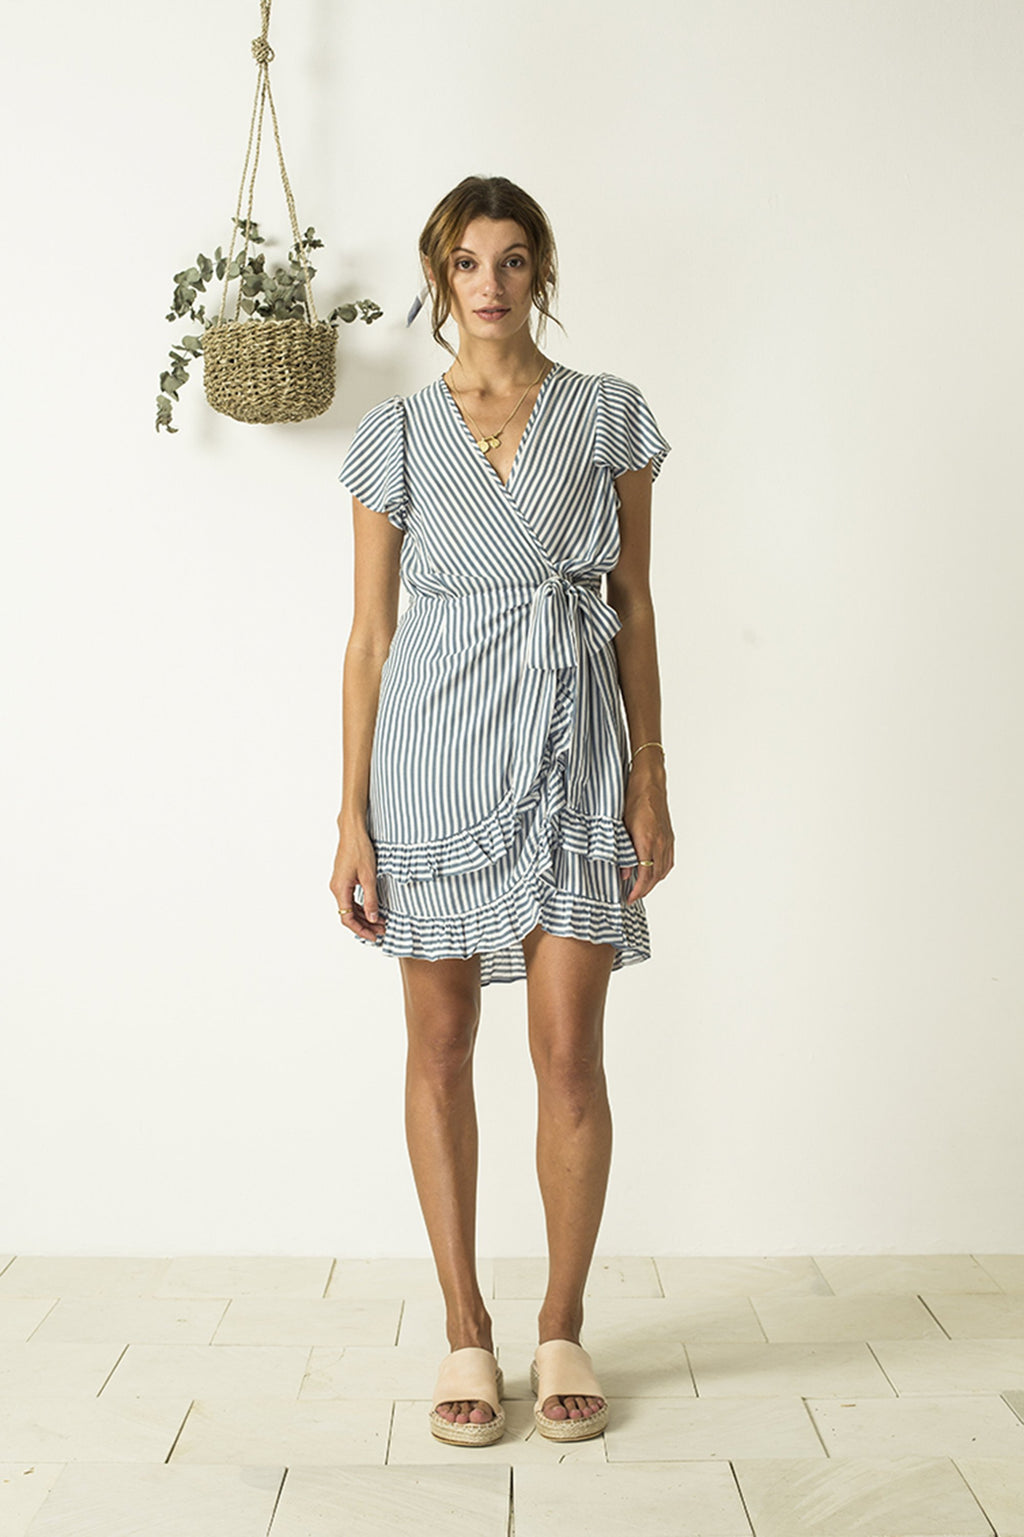 BIRD AND KITE - Lyla Ruffle Wrap Dress online at PAYA boutique